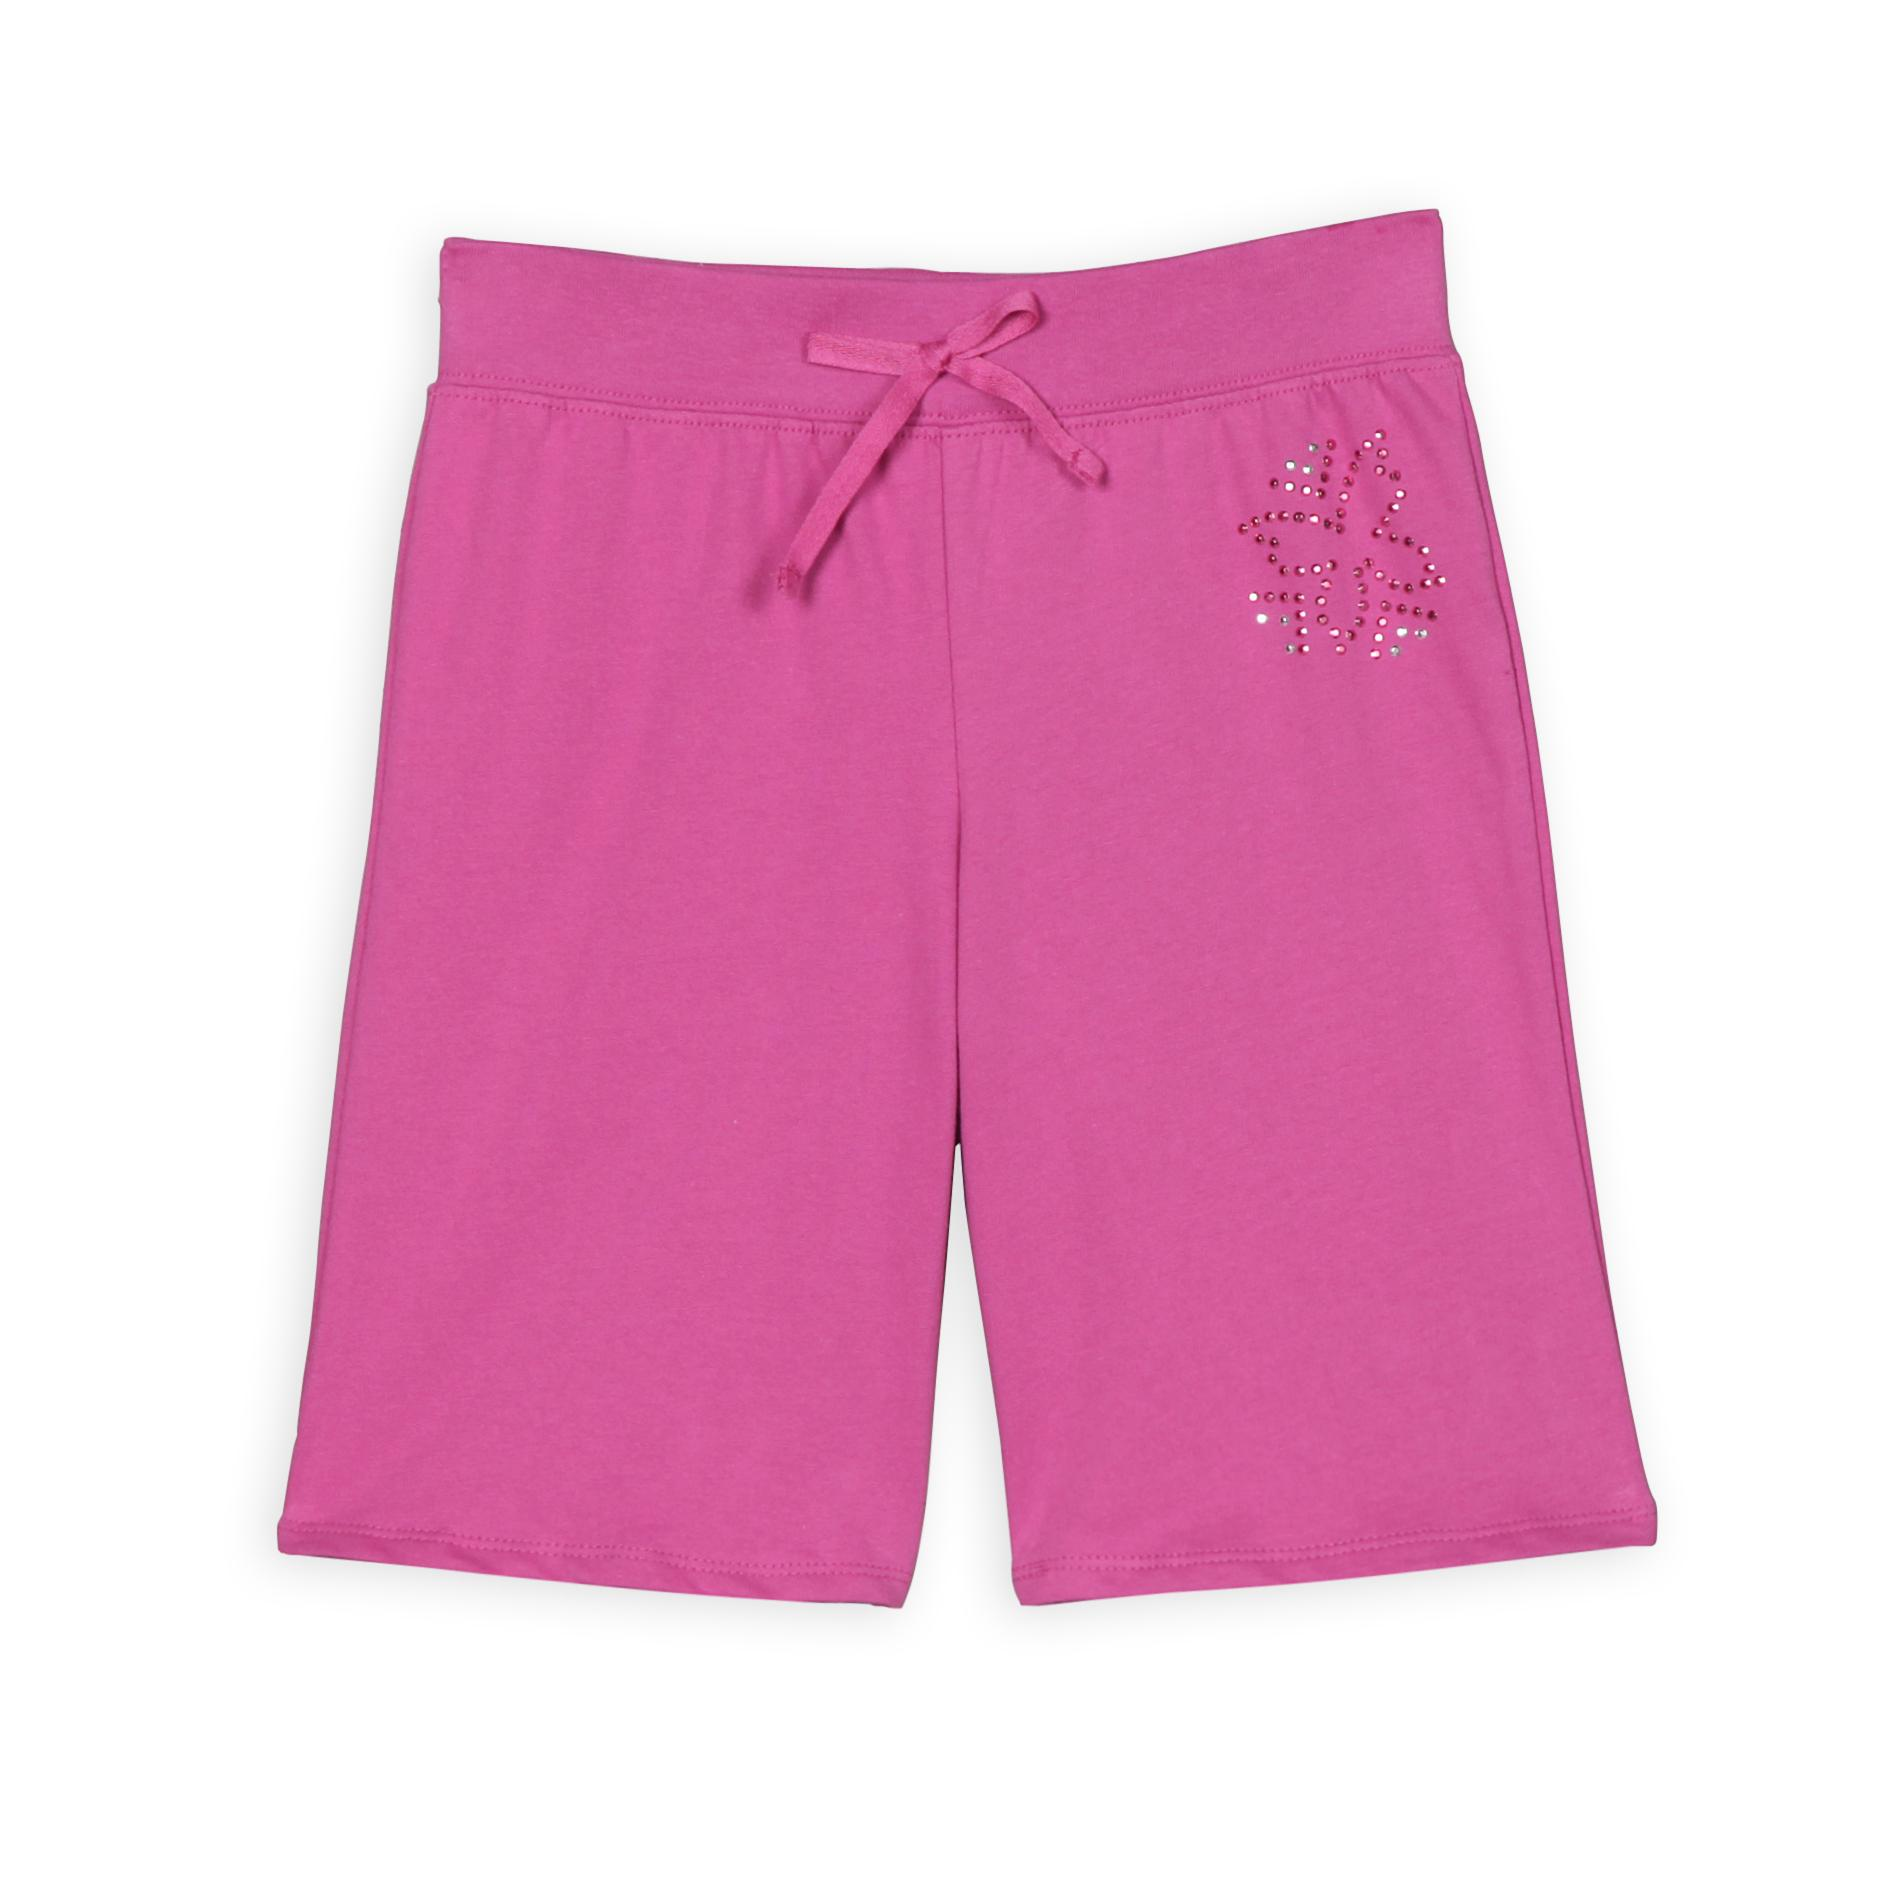 Canyon River Blues Girl's Knit Shorts - Butterfly at Sears.com